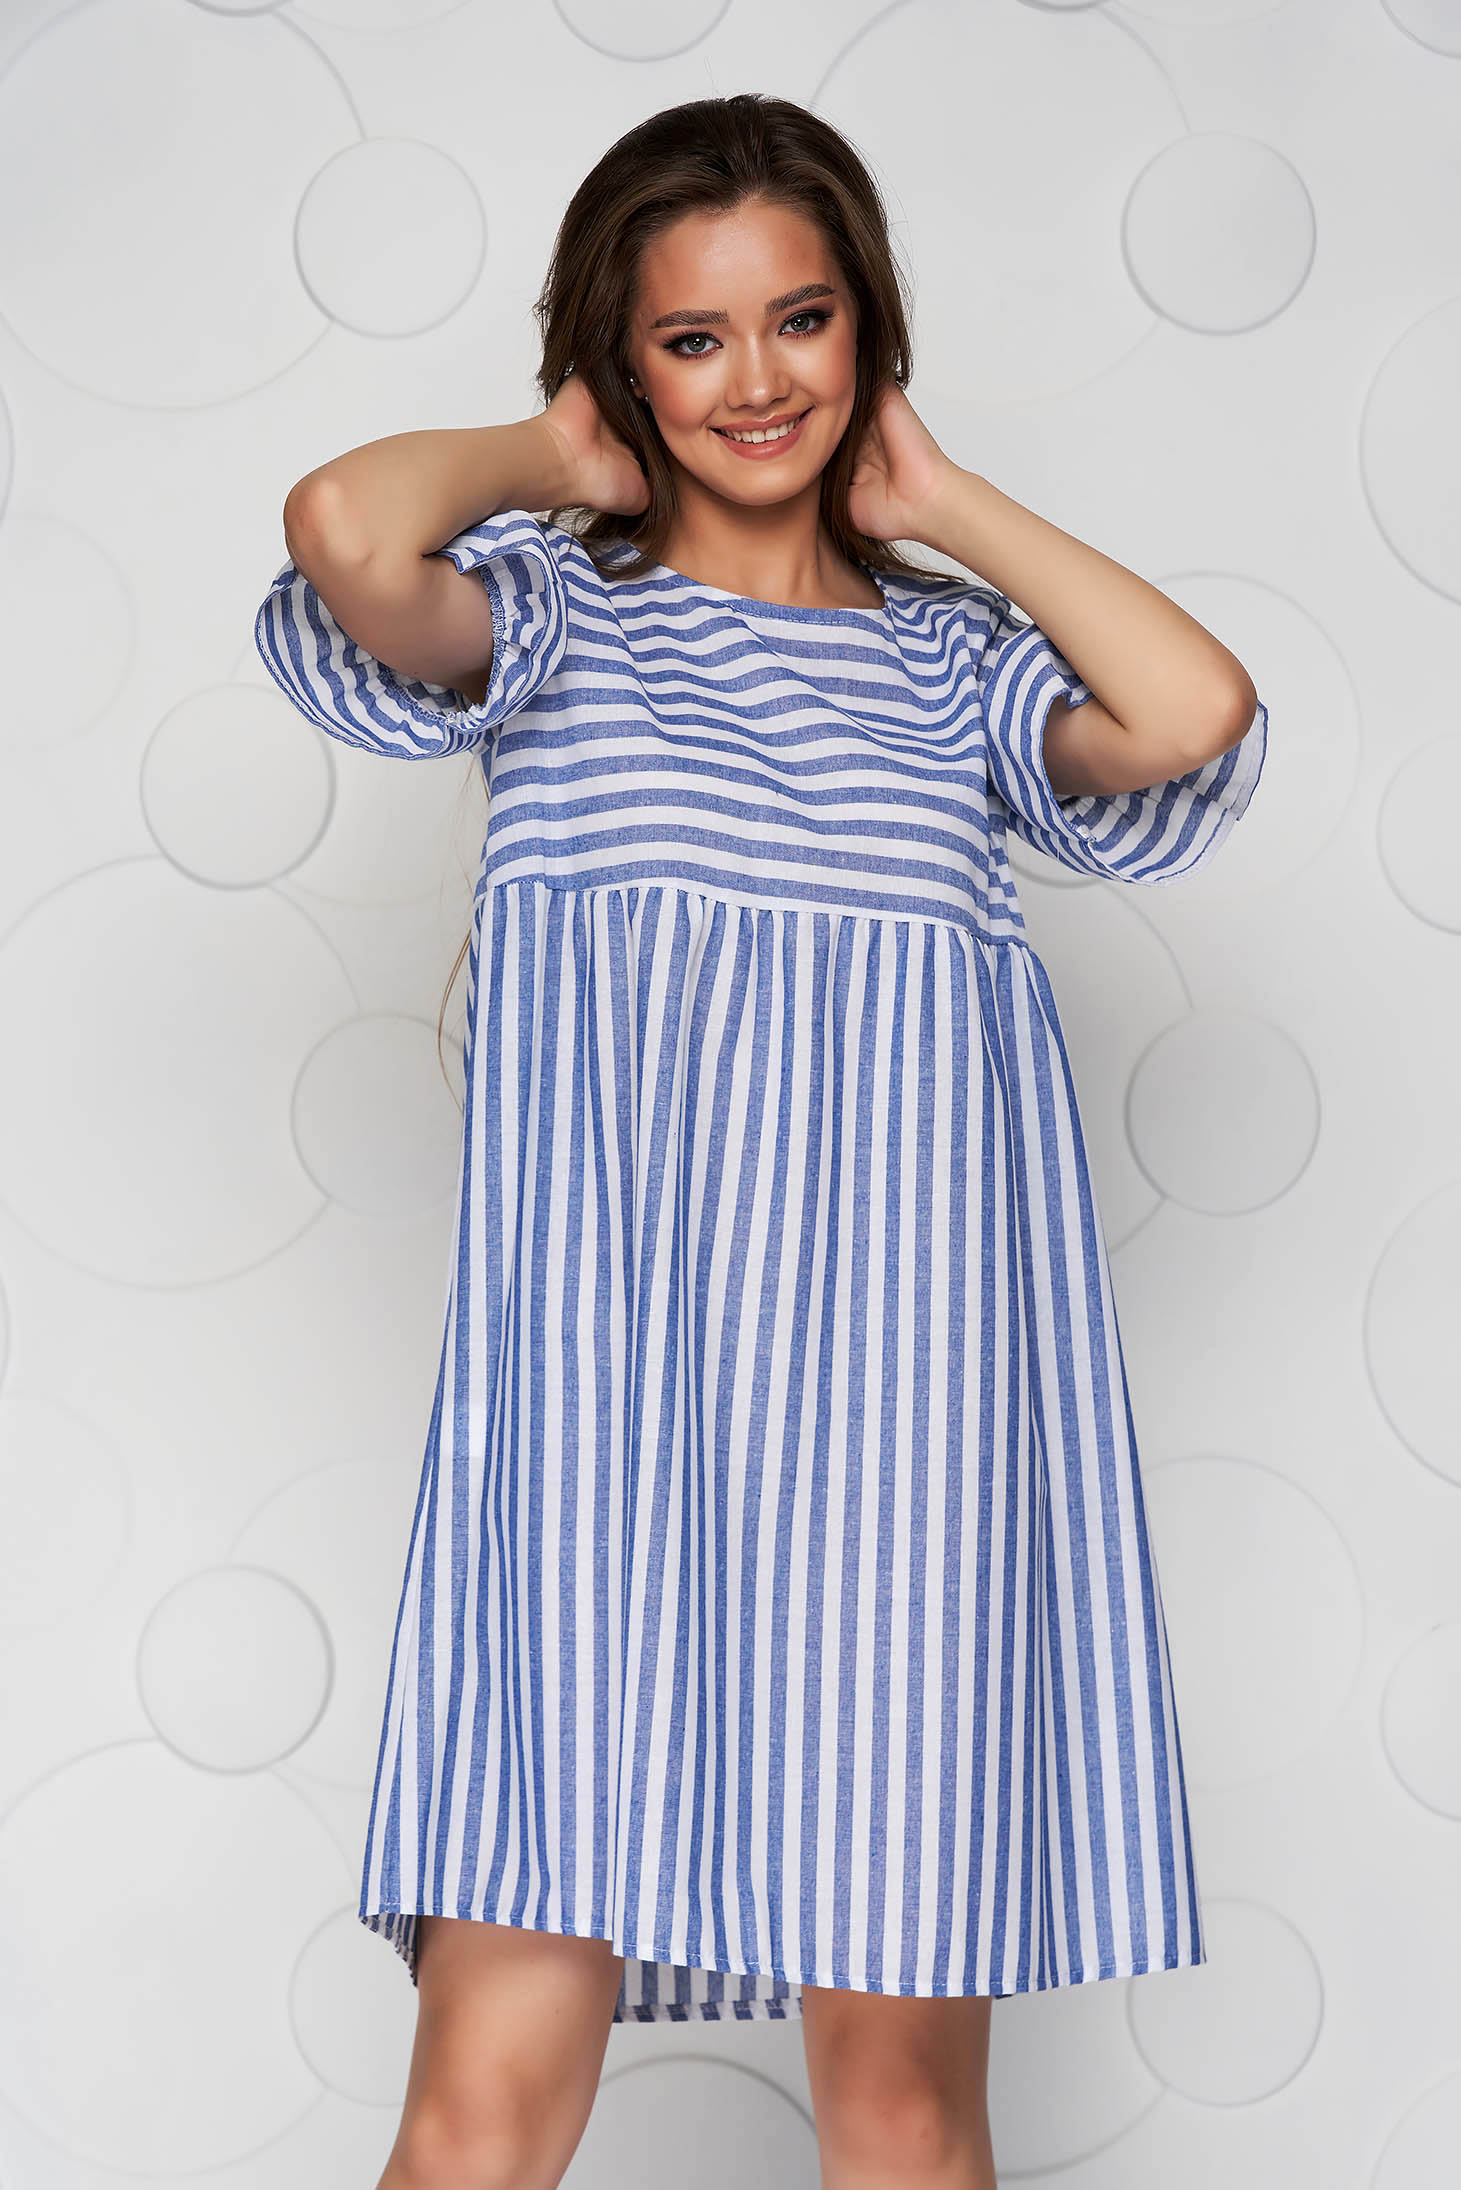 Blue dress with stripes loose fit midi cotton